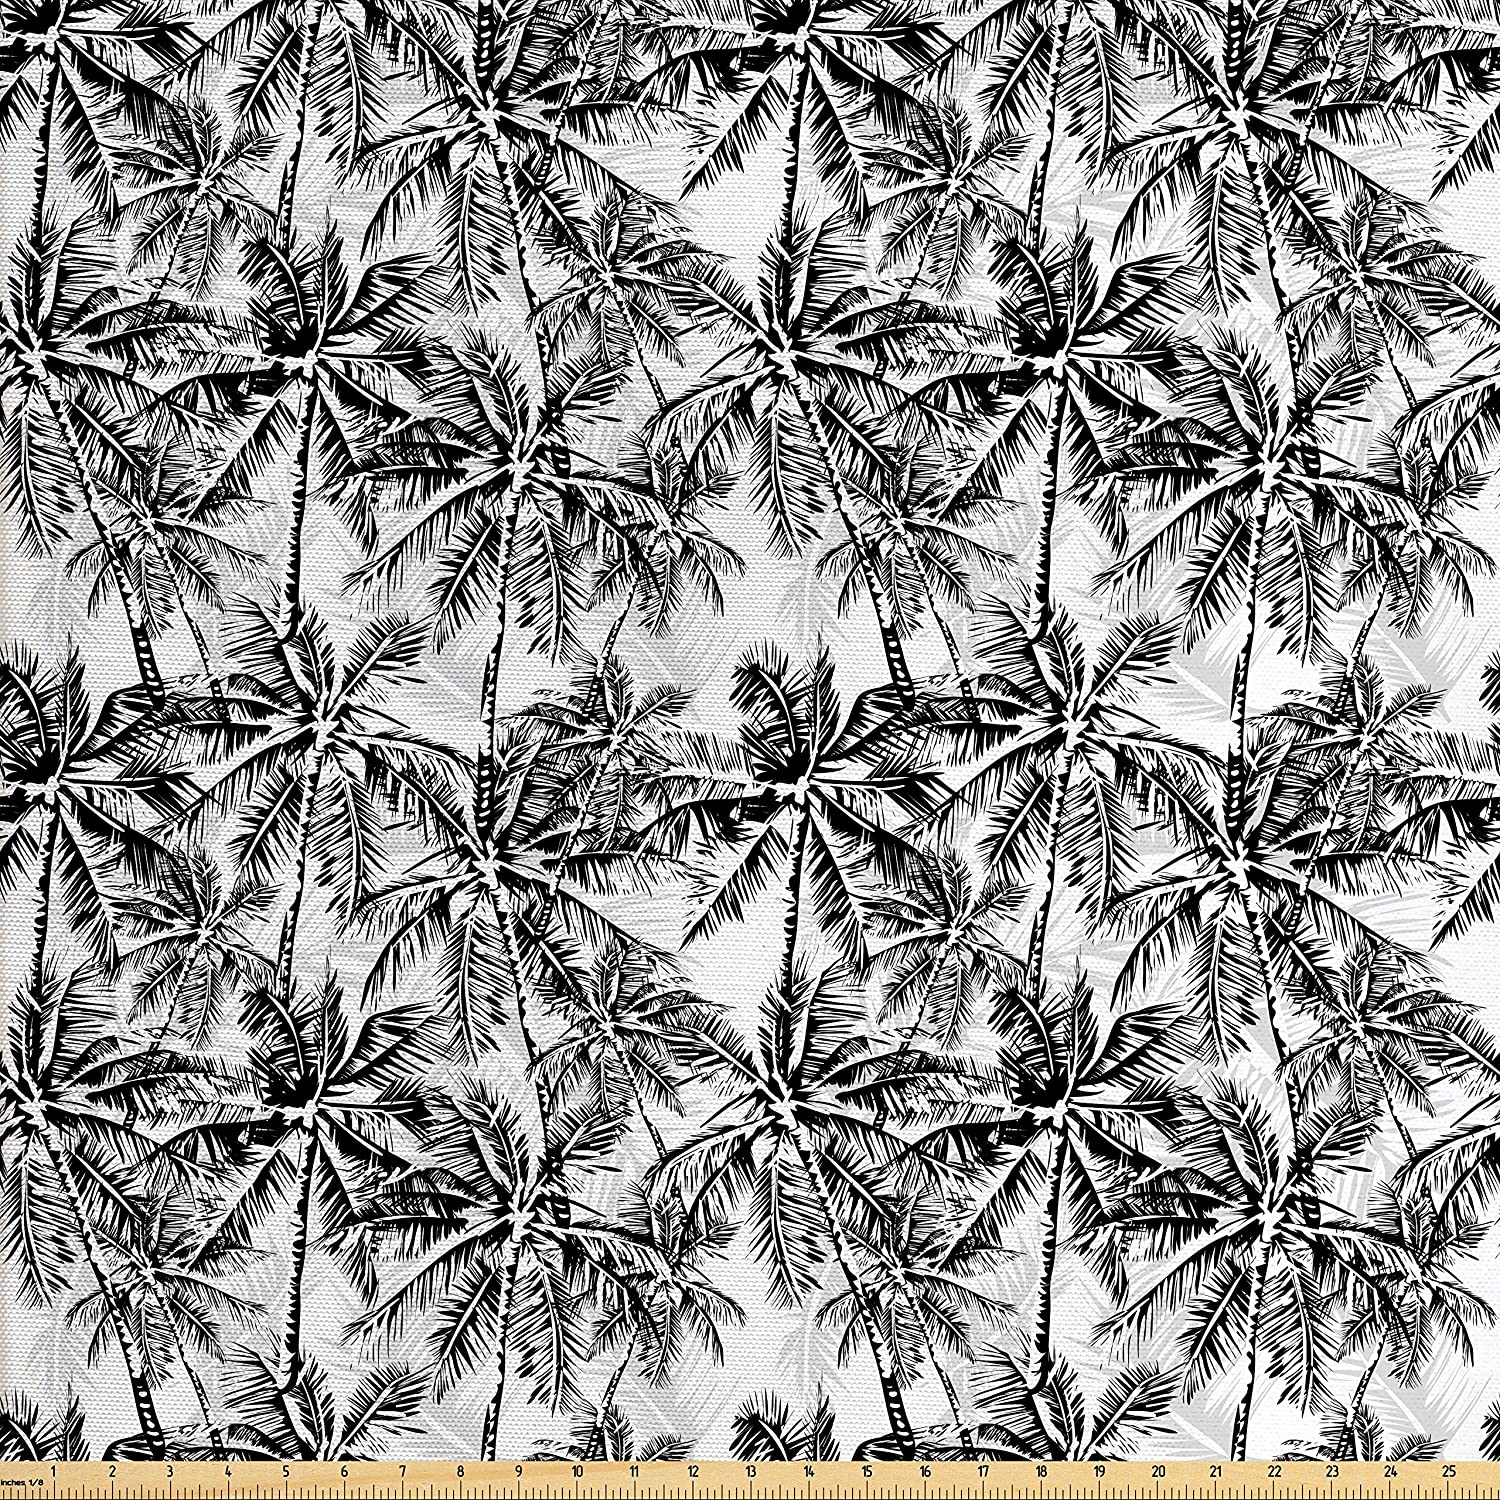 Ambesonne Palm Tree Fabric by The Yard, Monochrome Woodland Pattern Depicting Black Palm Tree on a White Background, Decorative Fabric for Upholstery and Home Accents, Black White